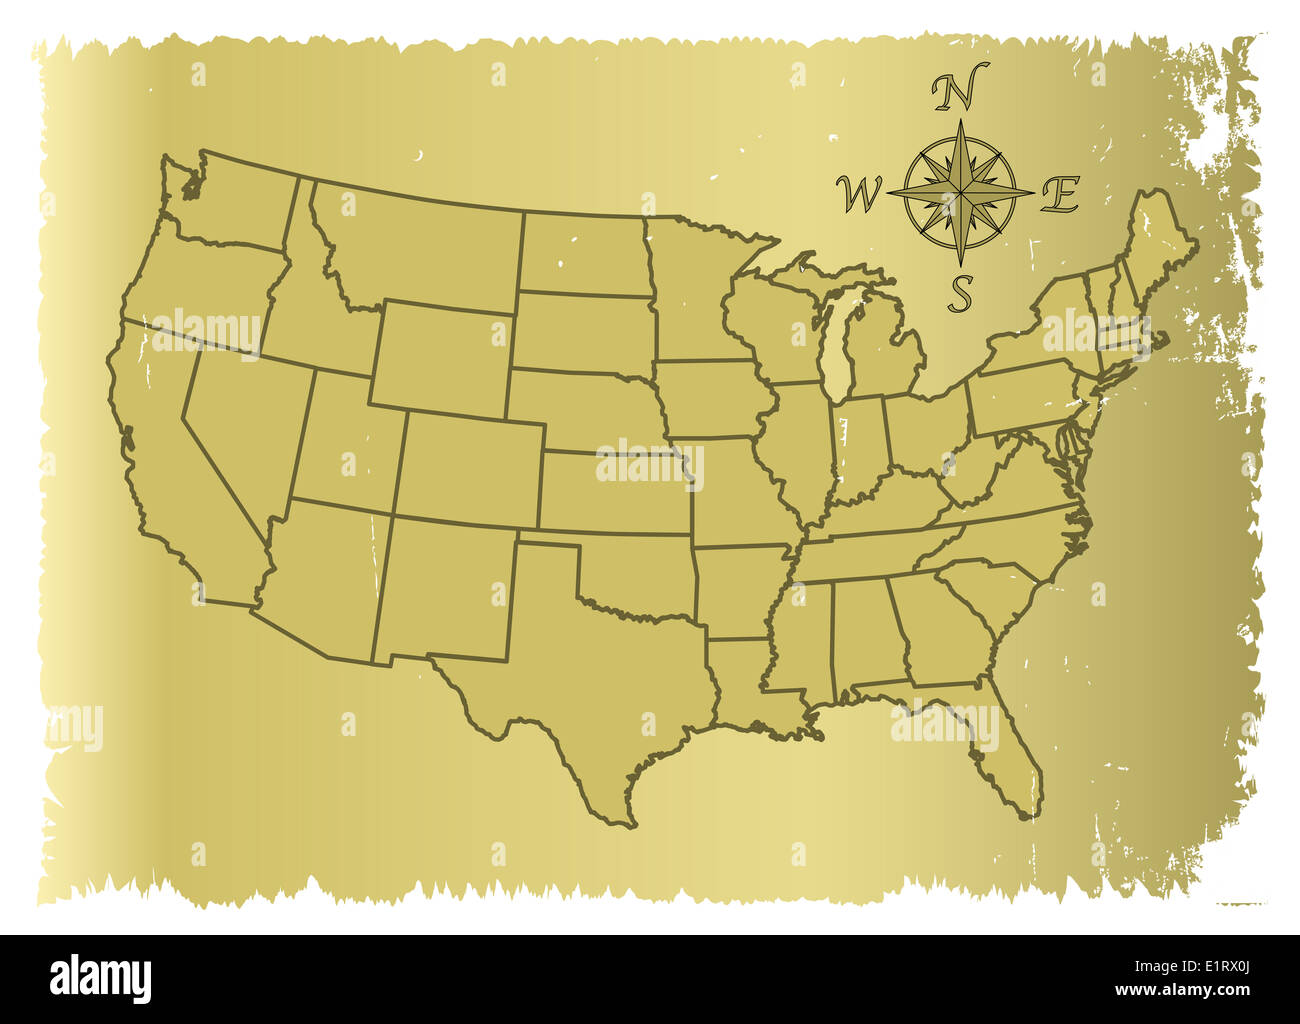 Geographical Map Of United States Stock Photos ...